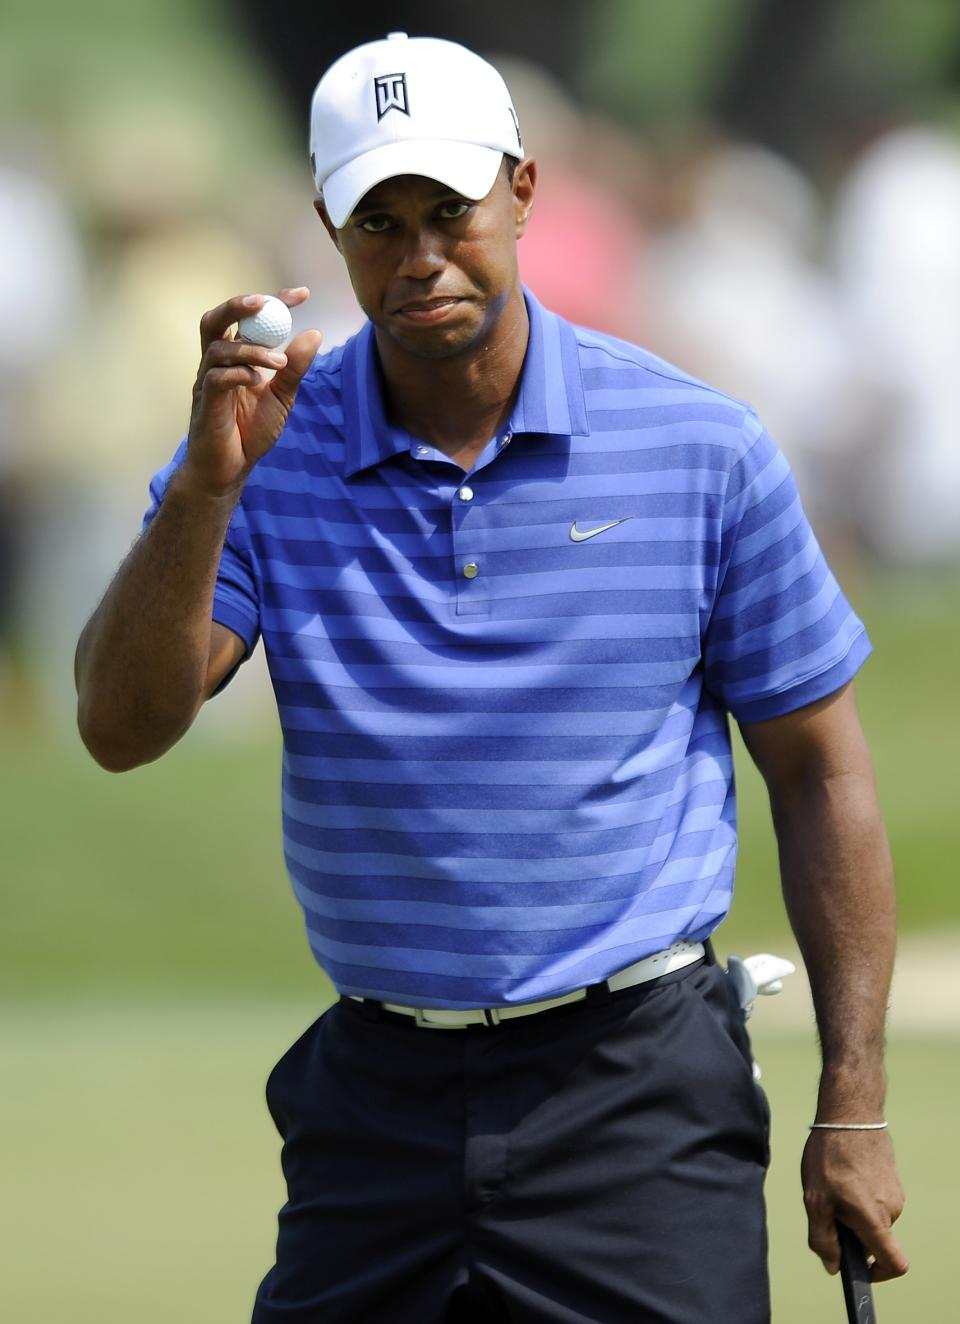 Tiger Woods acknowledges the gallery after making par on the third green during the second round of the AT&T National golf tournament at Congressional Country Club in Bethesda, Md., Friday, June 29, 2012. (AP Photo/Nick Wass)